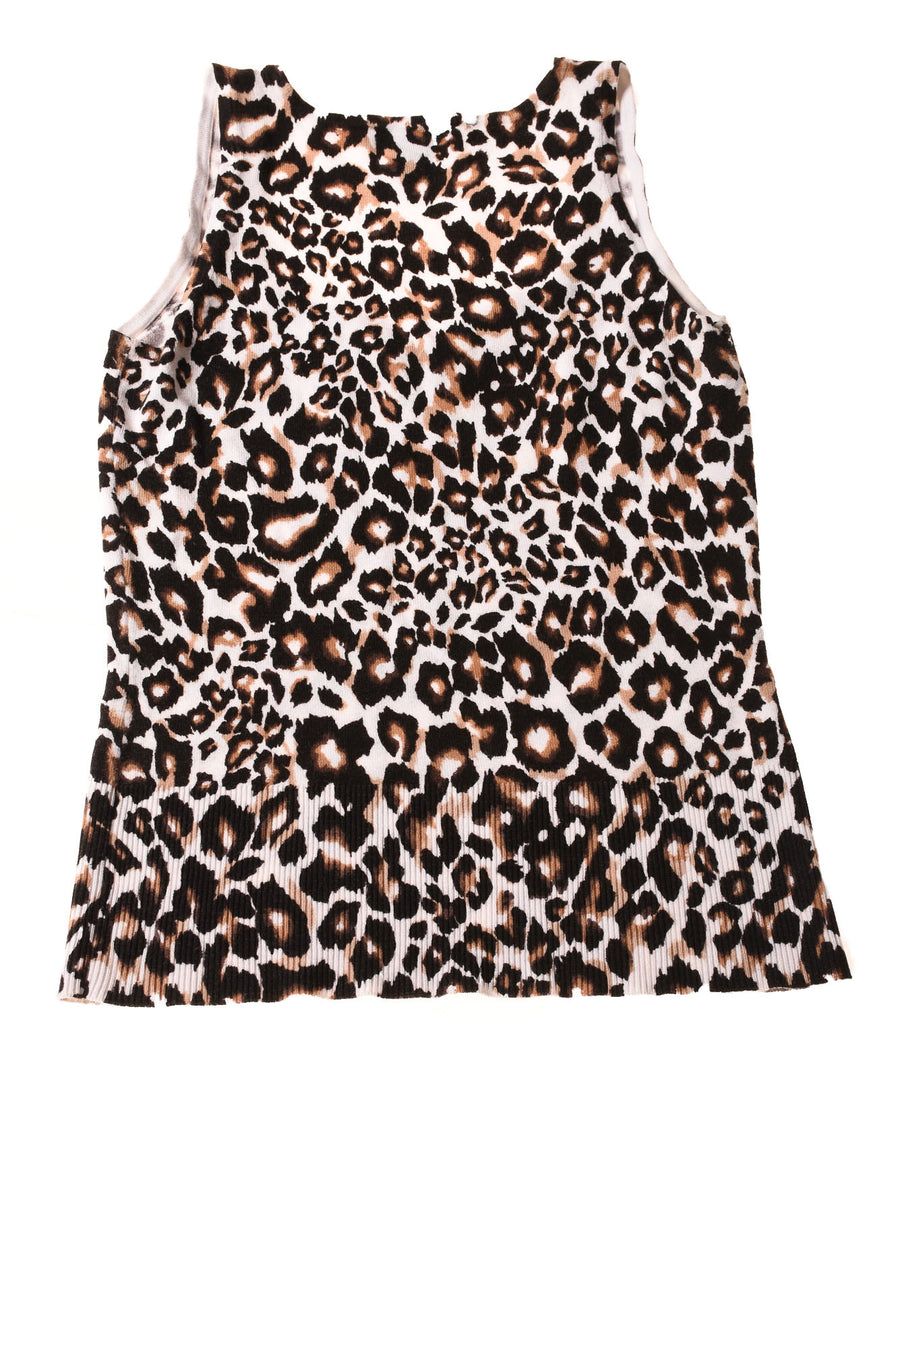 USED White House Black Market Women's Top Small Black & Brown / Animal Print